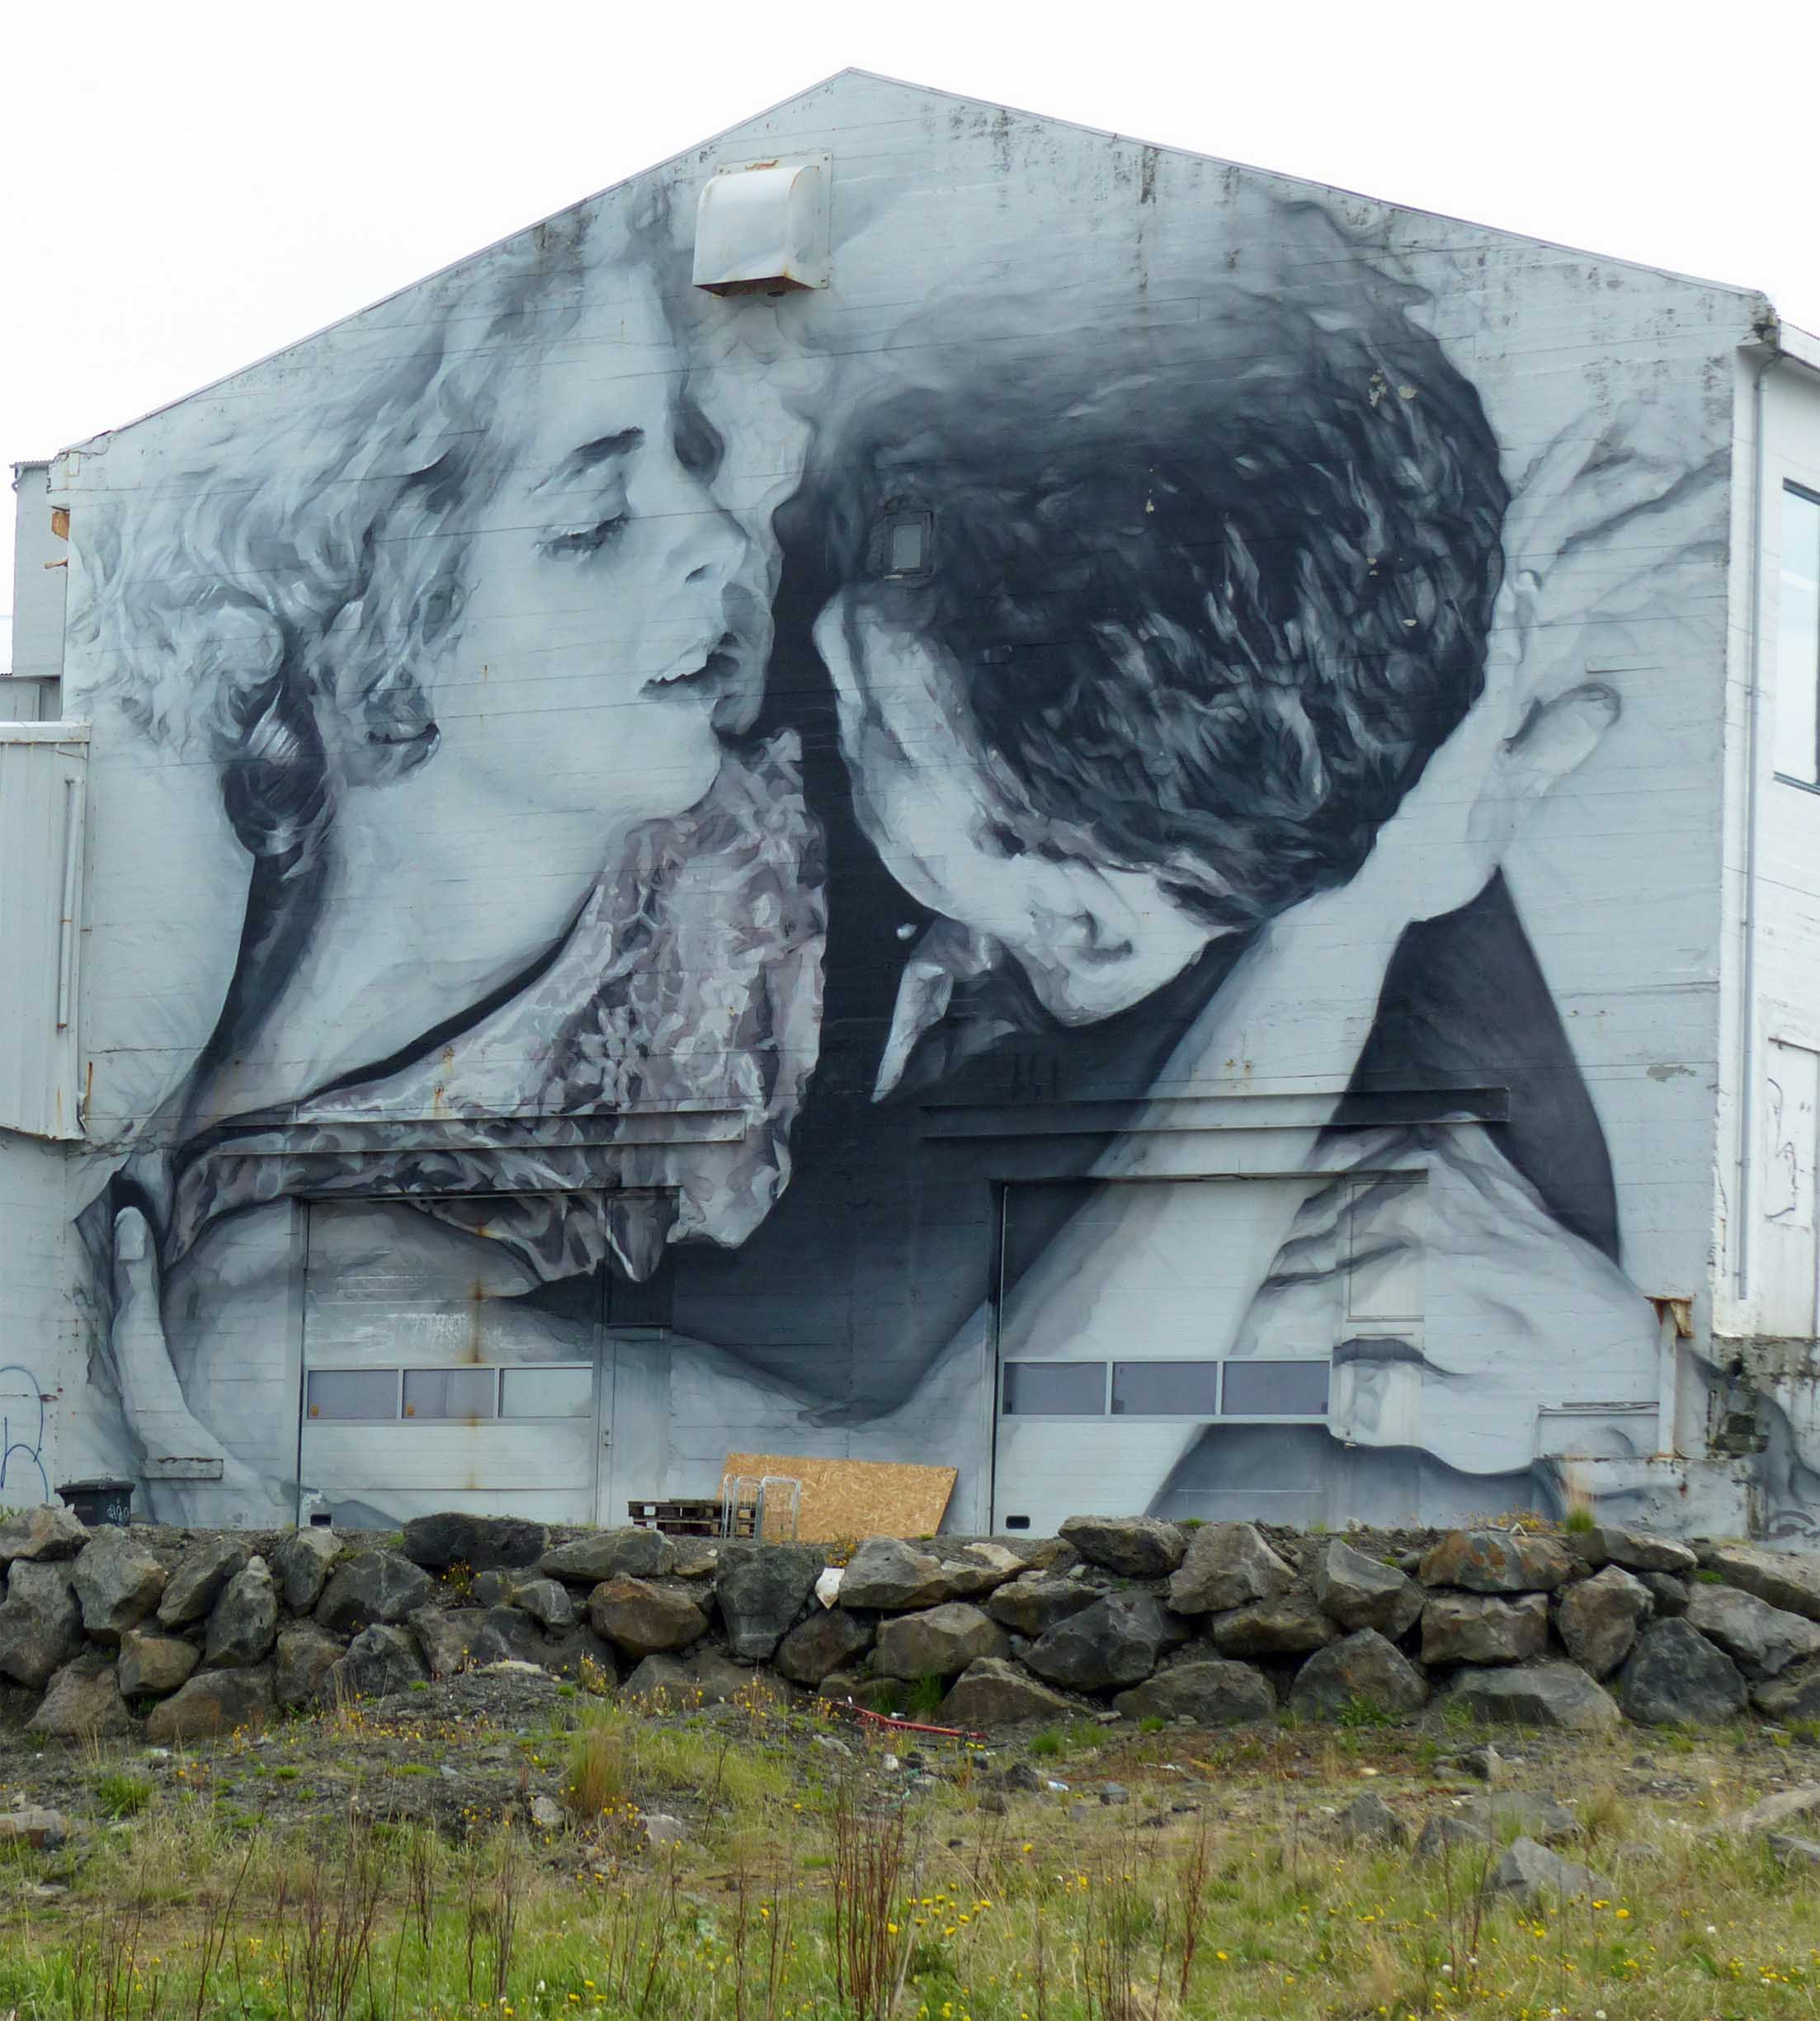 Huge black and white mural on an old building